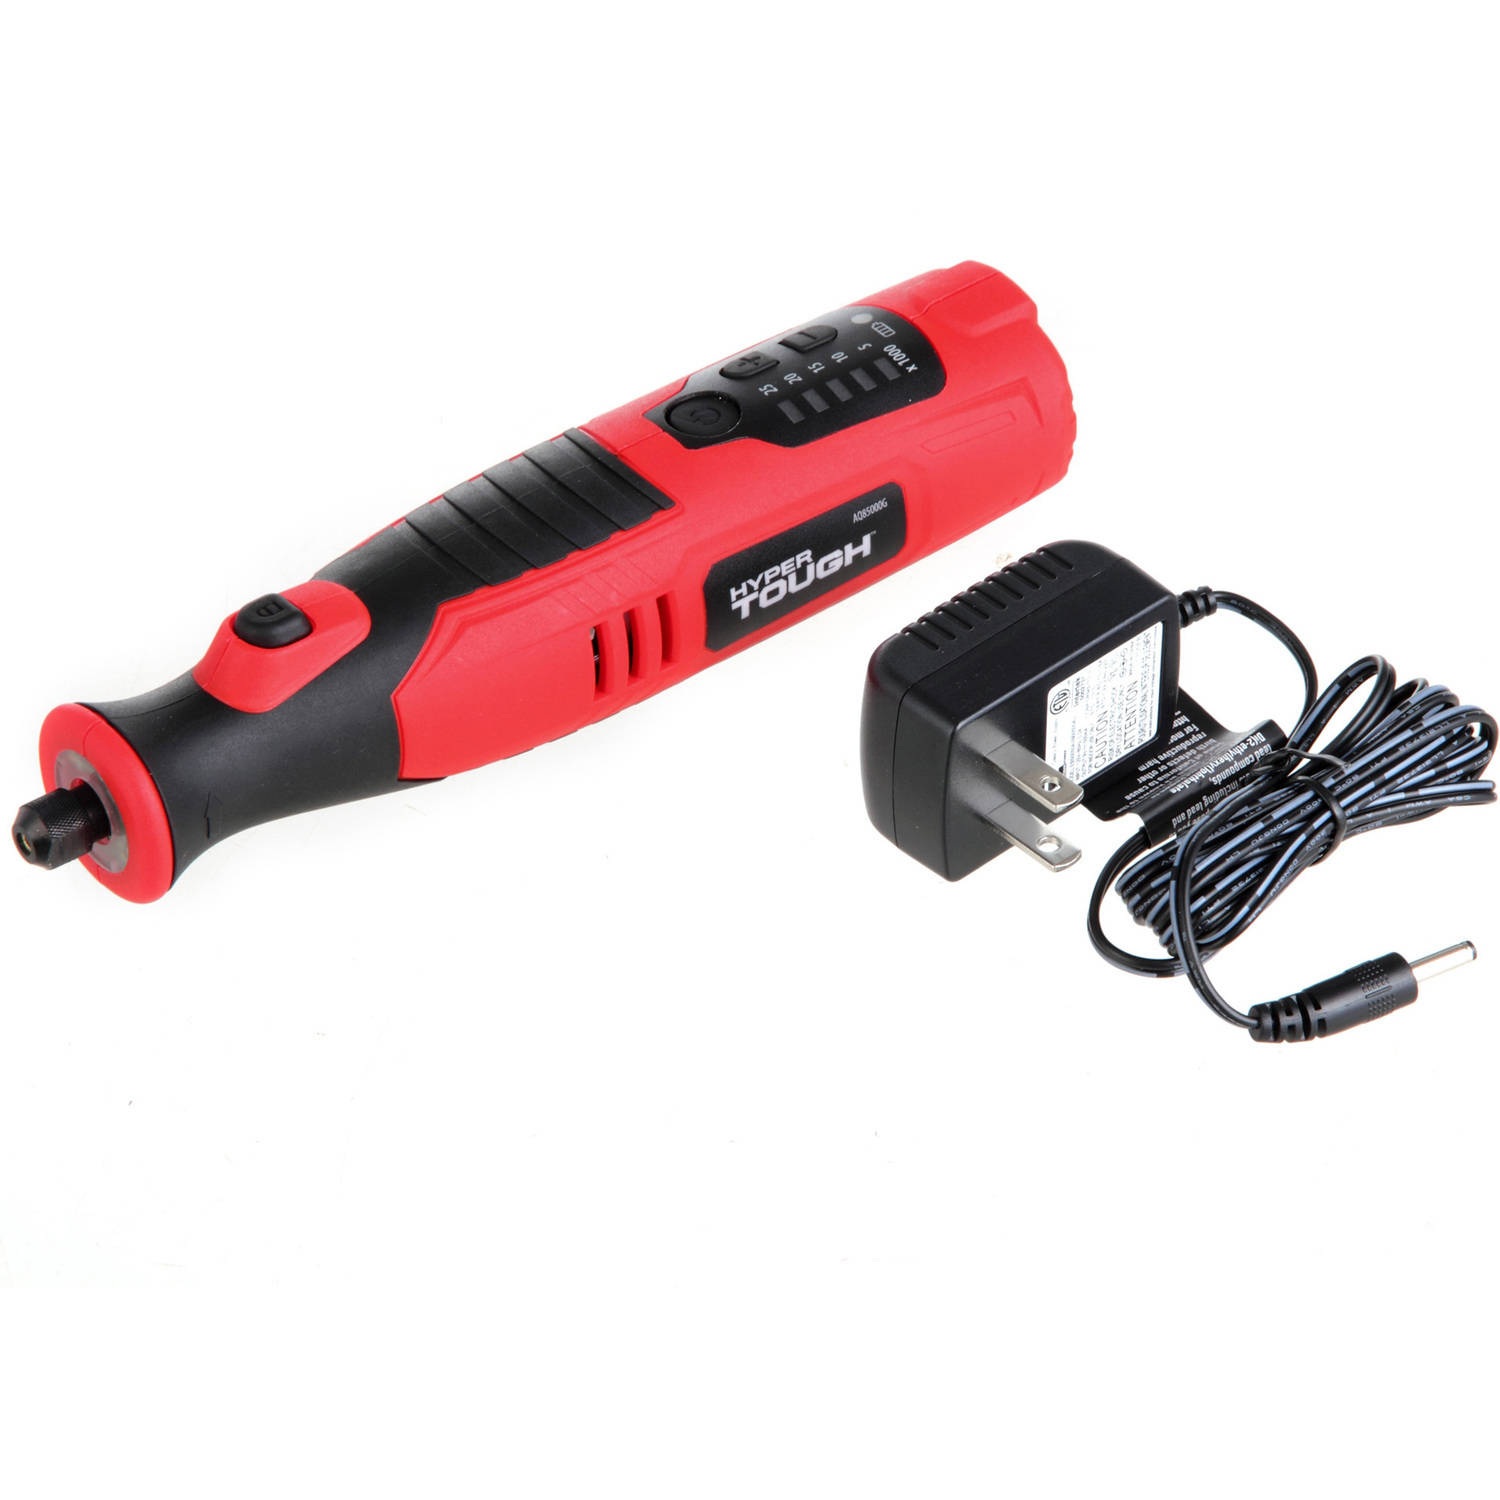 Hyper Tough 8-Volt Lithium-Ion Rotary Tool with 40 Accessories